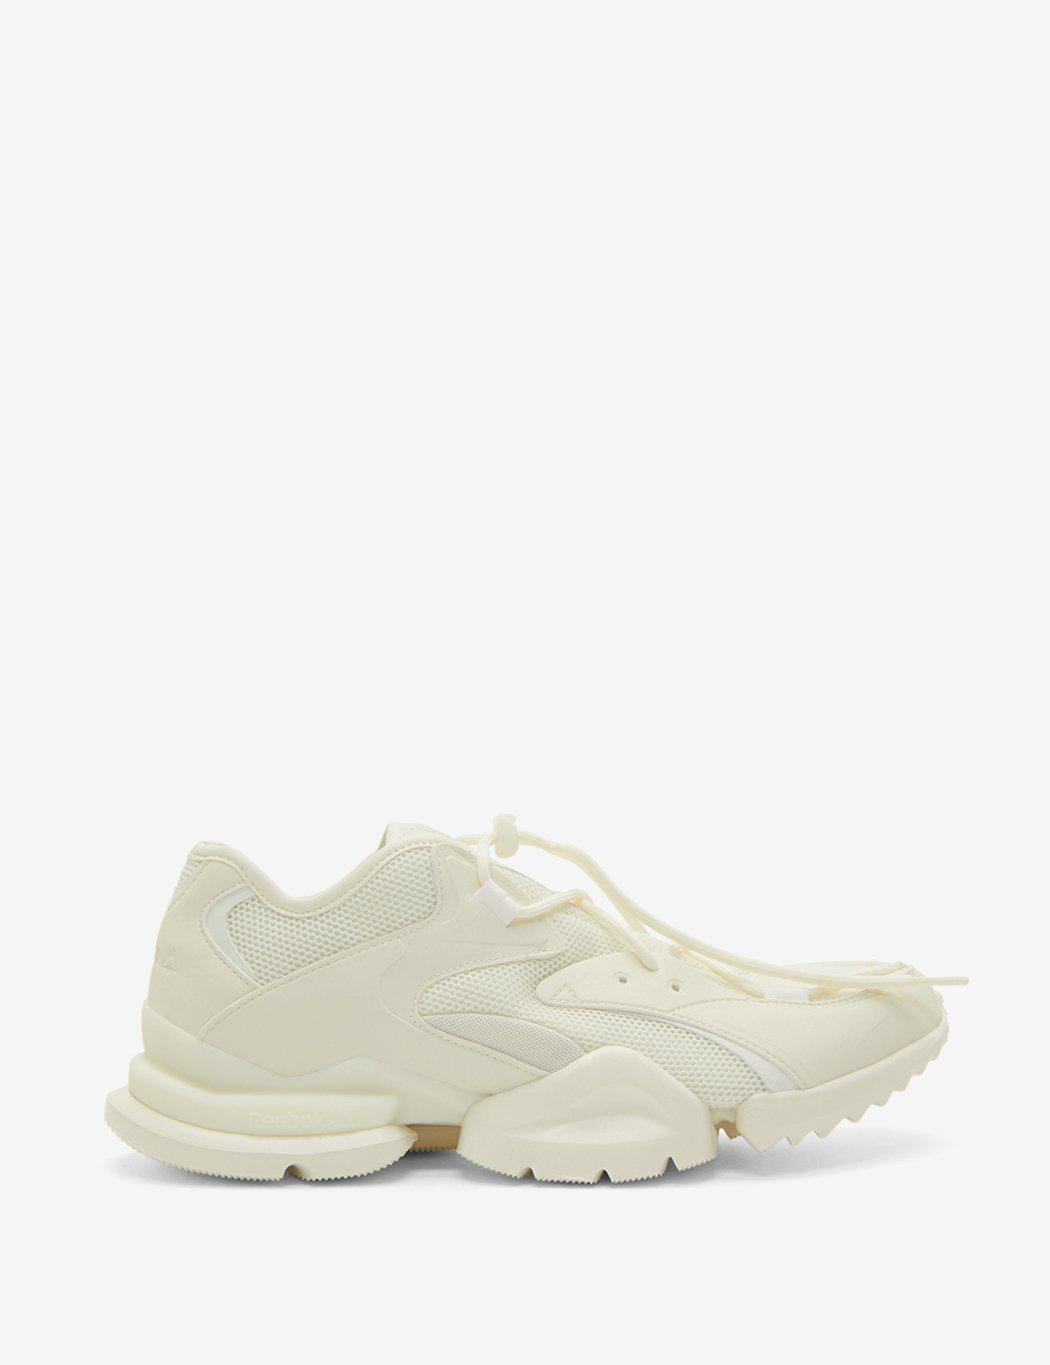 53ef1b5ffe8 Reebok. Men s White Run r 96 (cn4602).  264  170 From Urban Excess